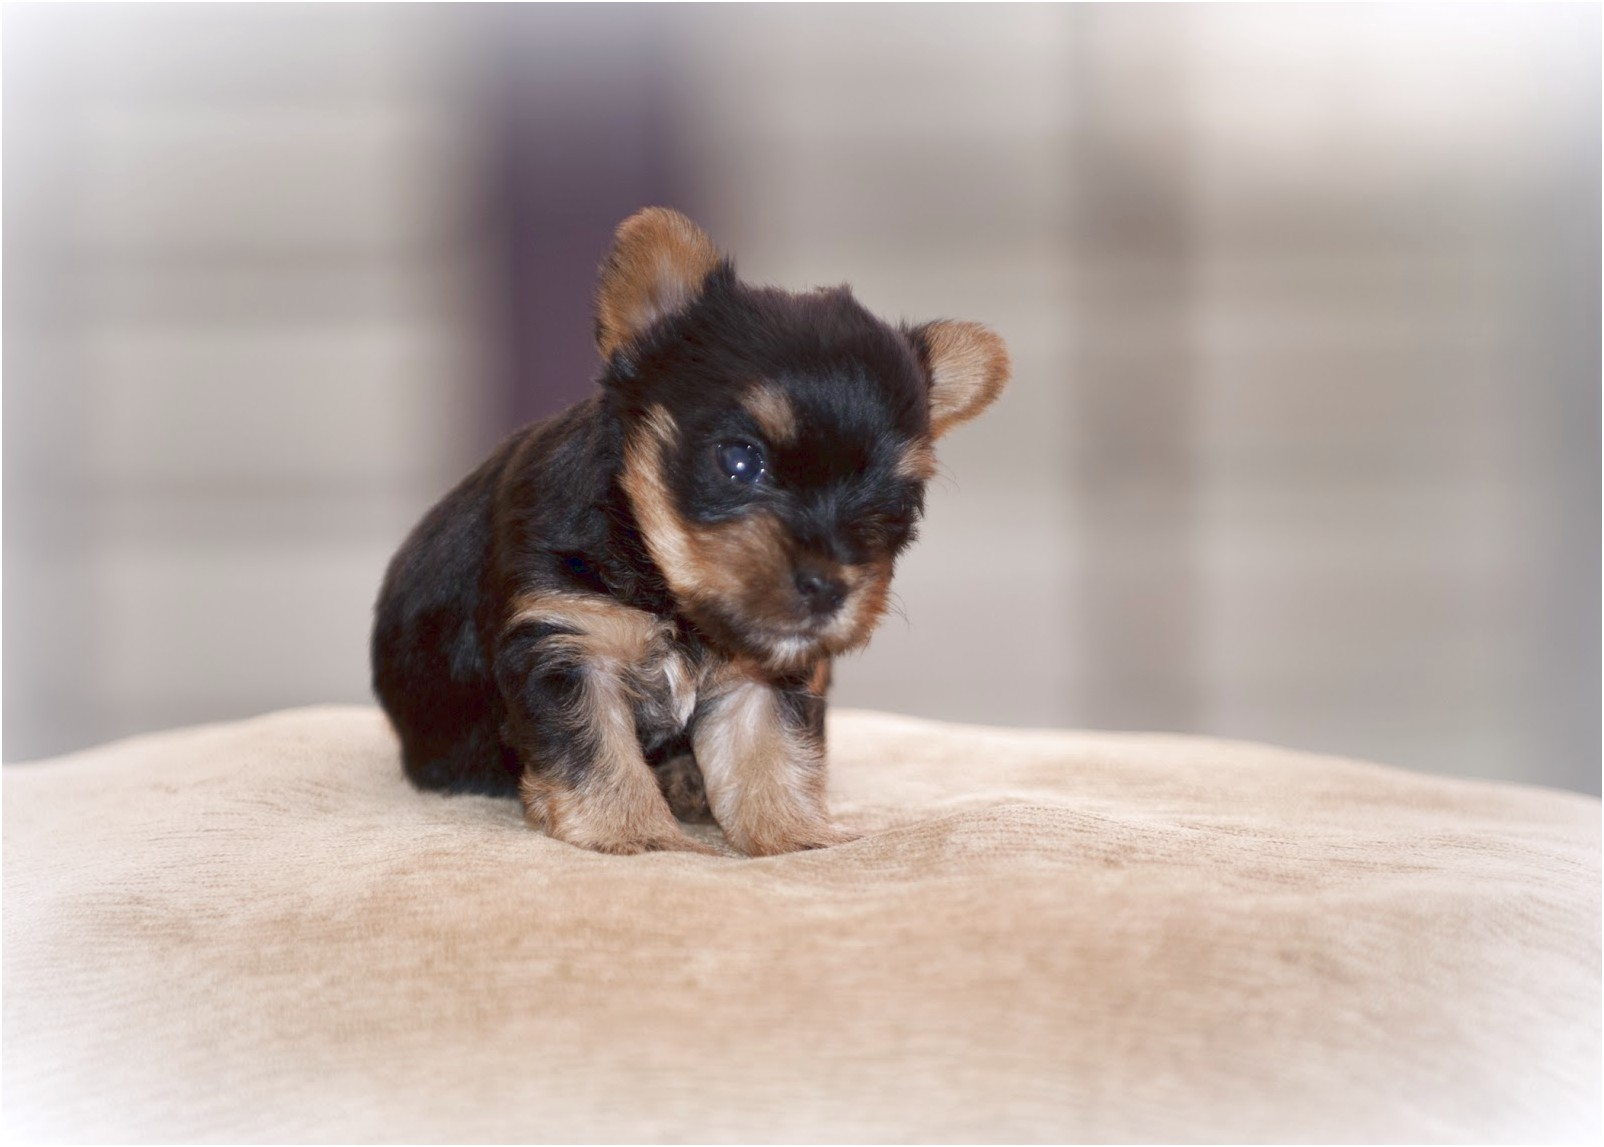 5 week old yorkshire terrier puppy